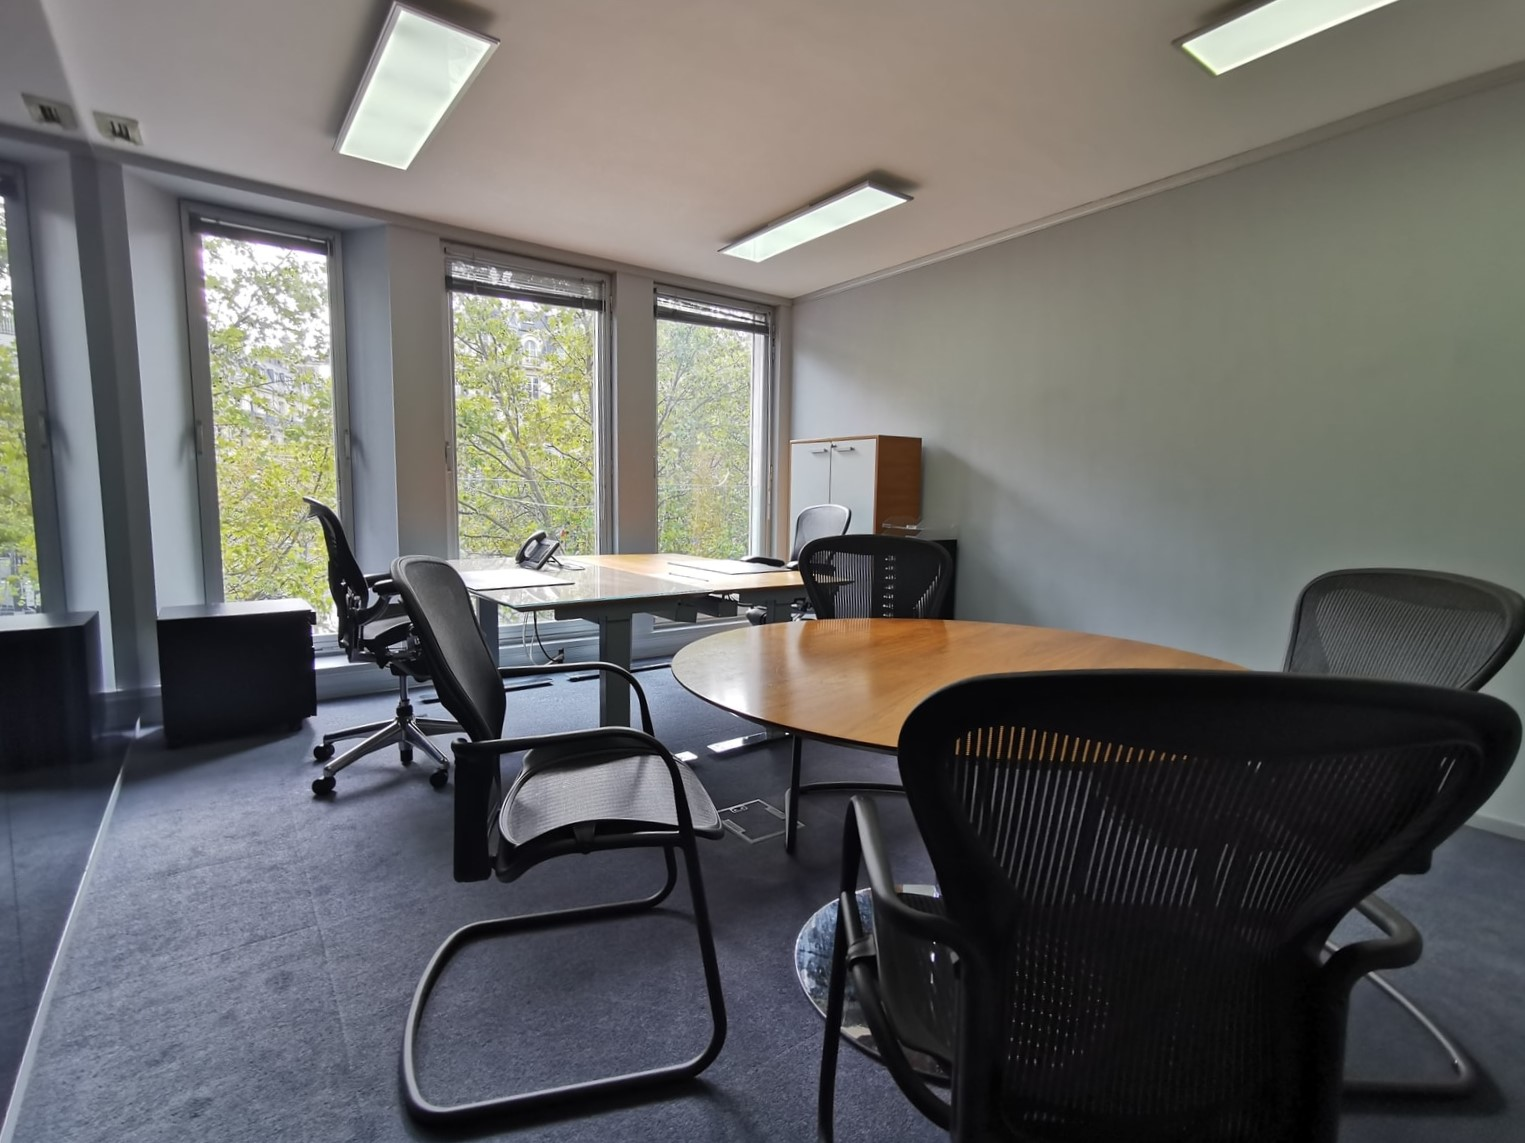 Office space with four workplaces